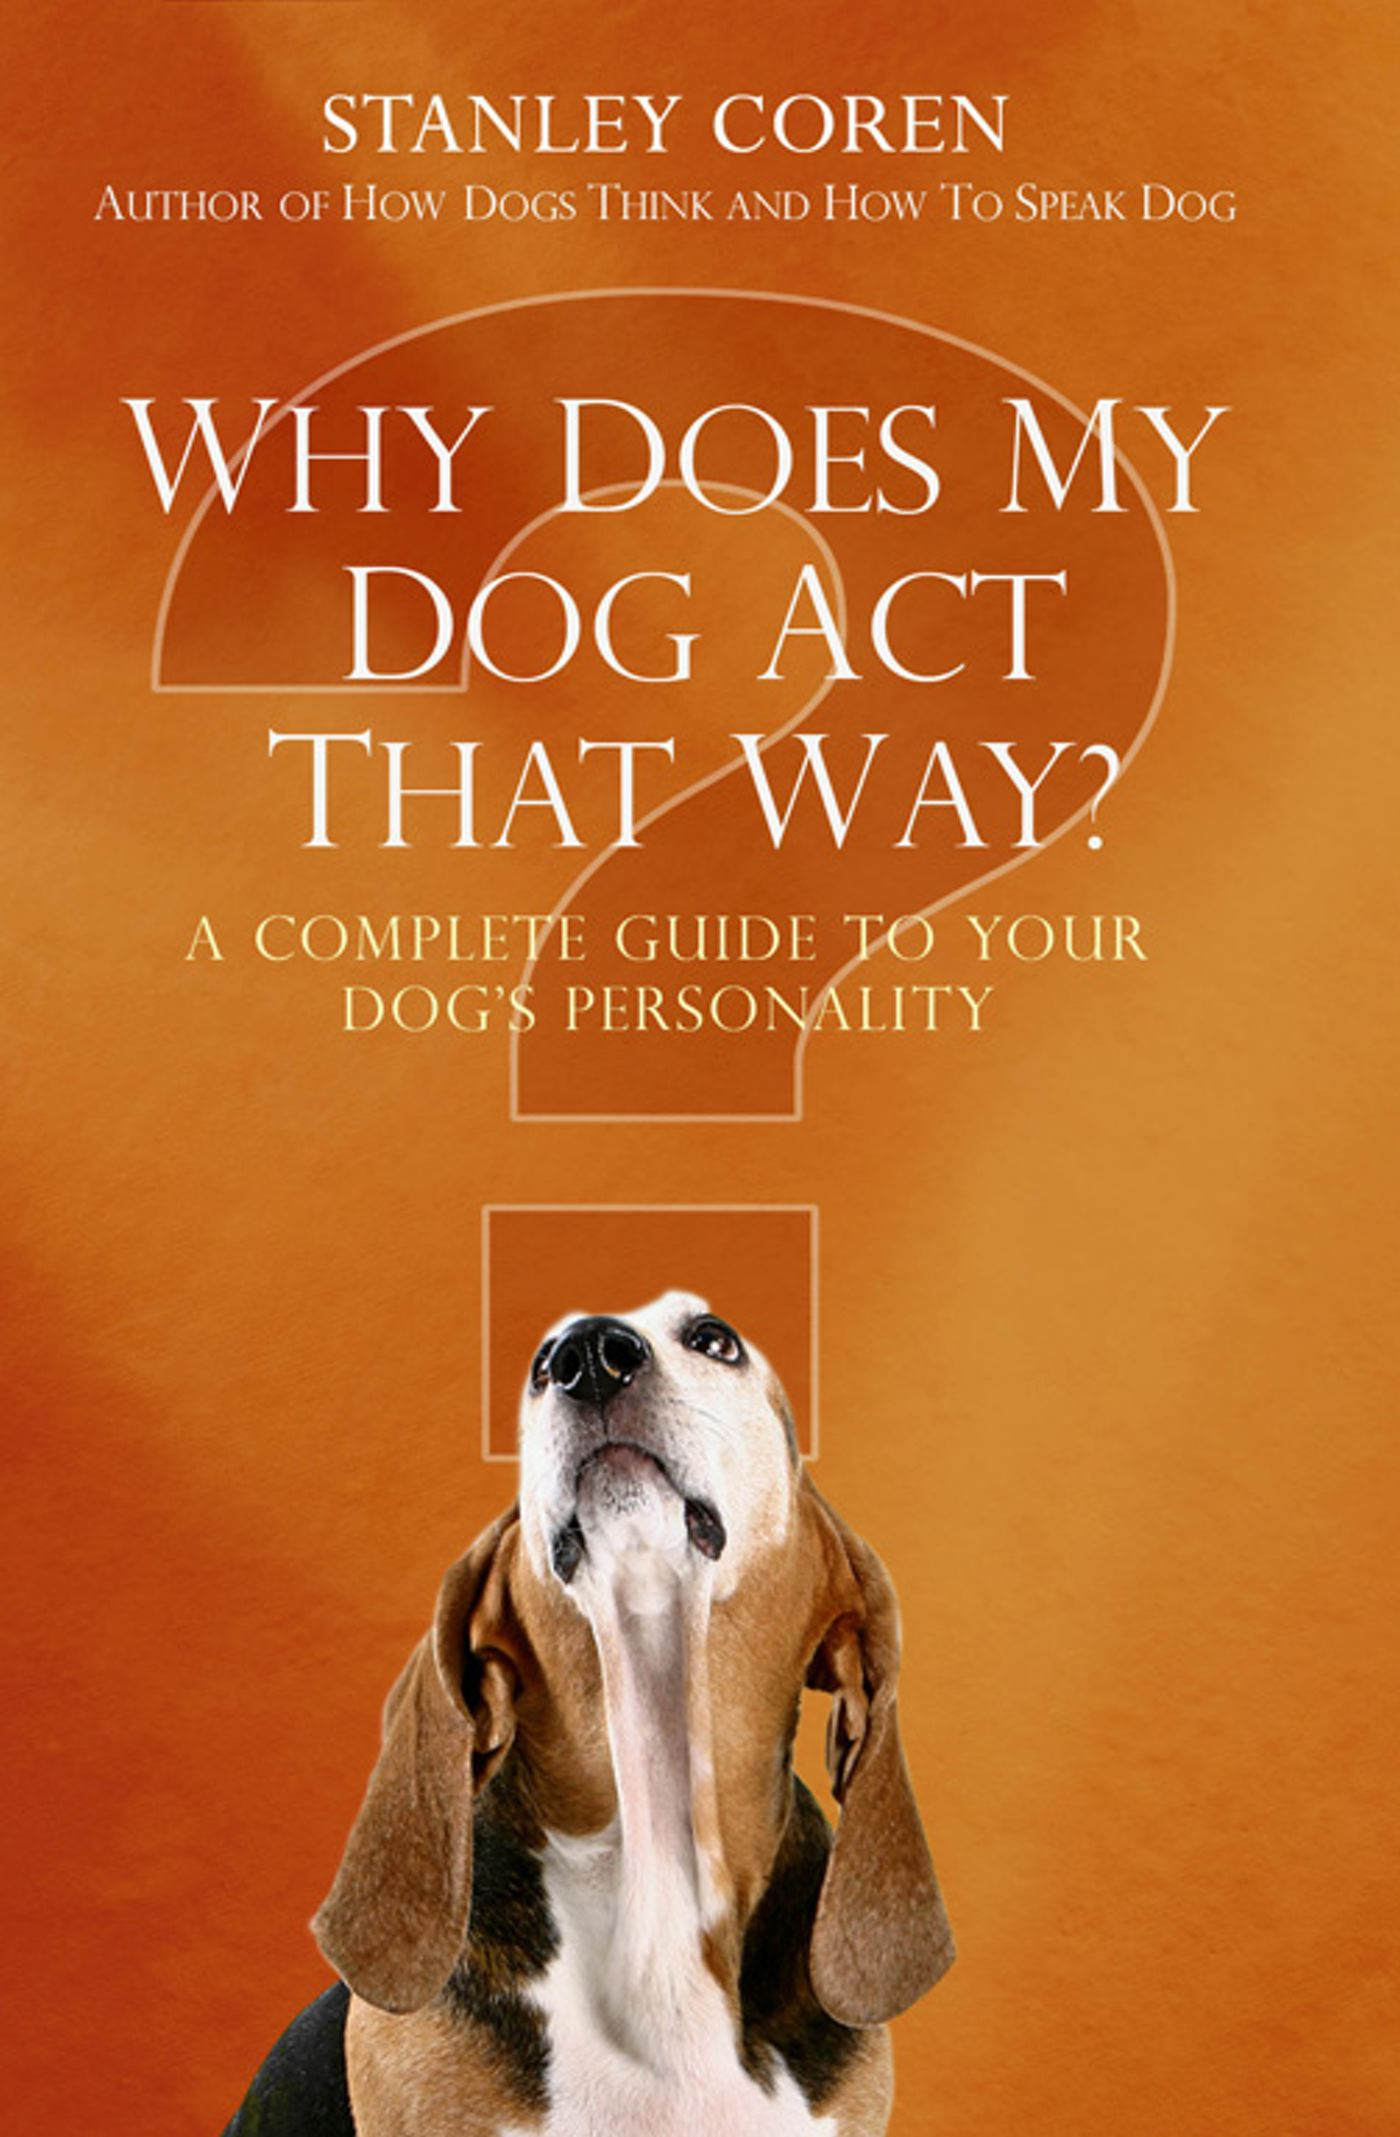 Why Does My Dog Act That Way? A Complete Guide to Your Dog's Personality